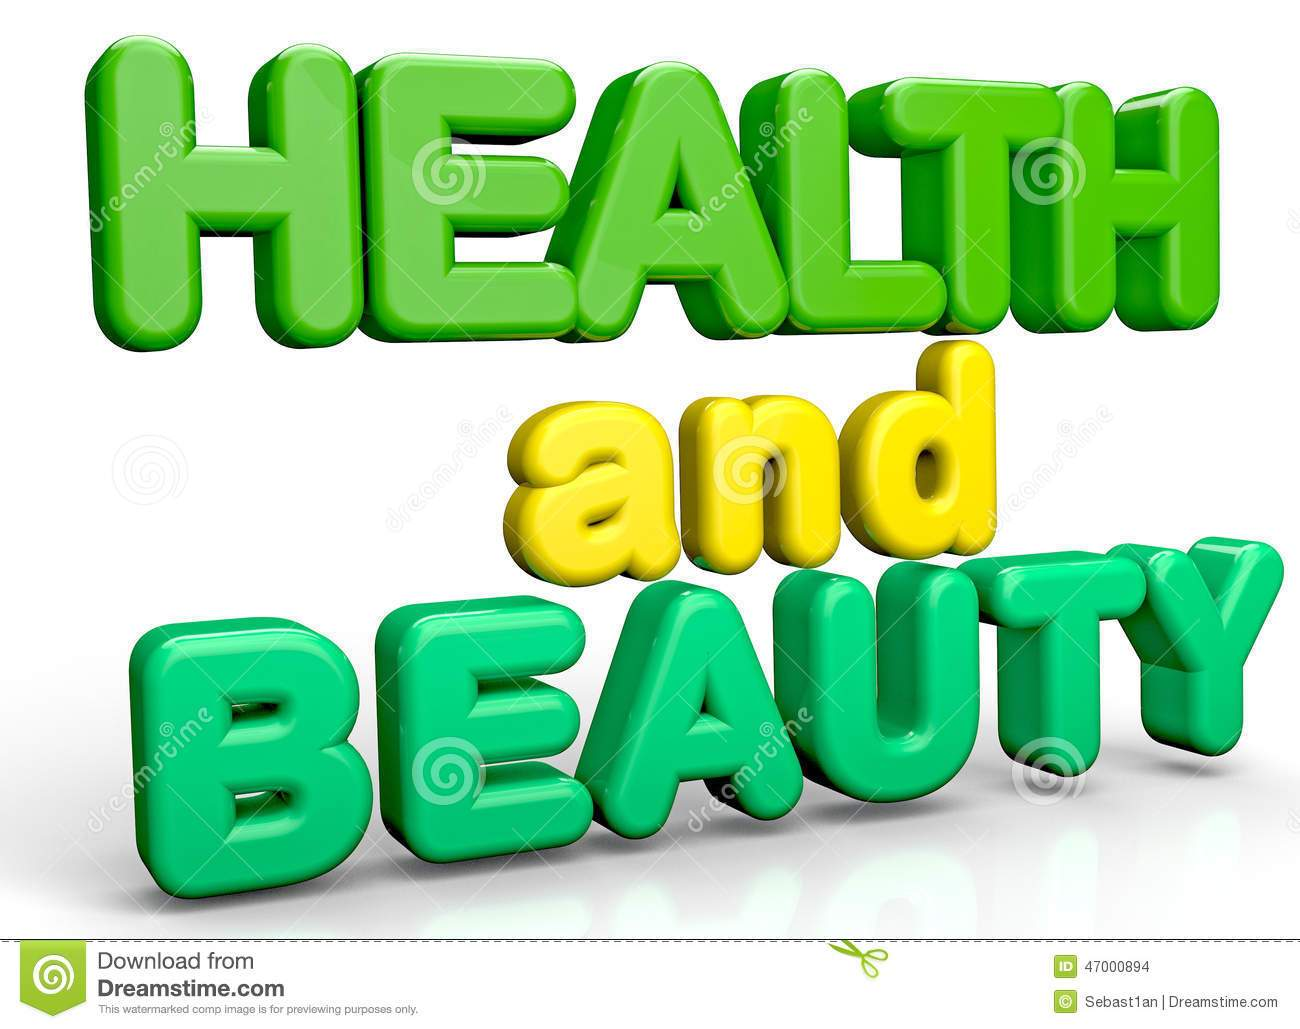 Health and beauty clipart png stock Health and beauty clipart 4 » Clipart Portal png stock